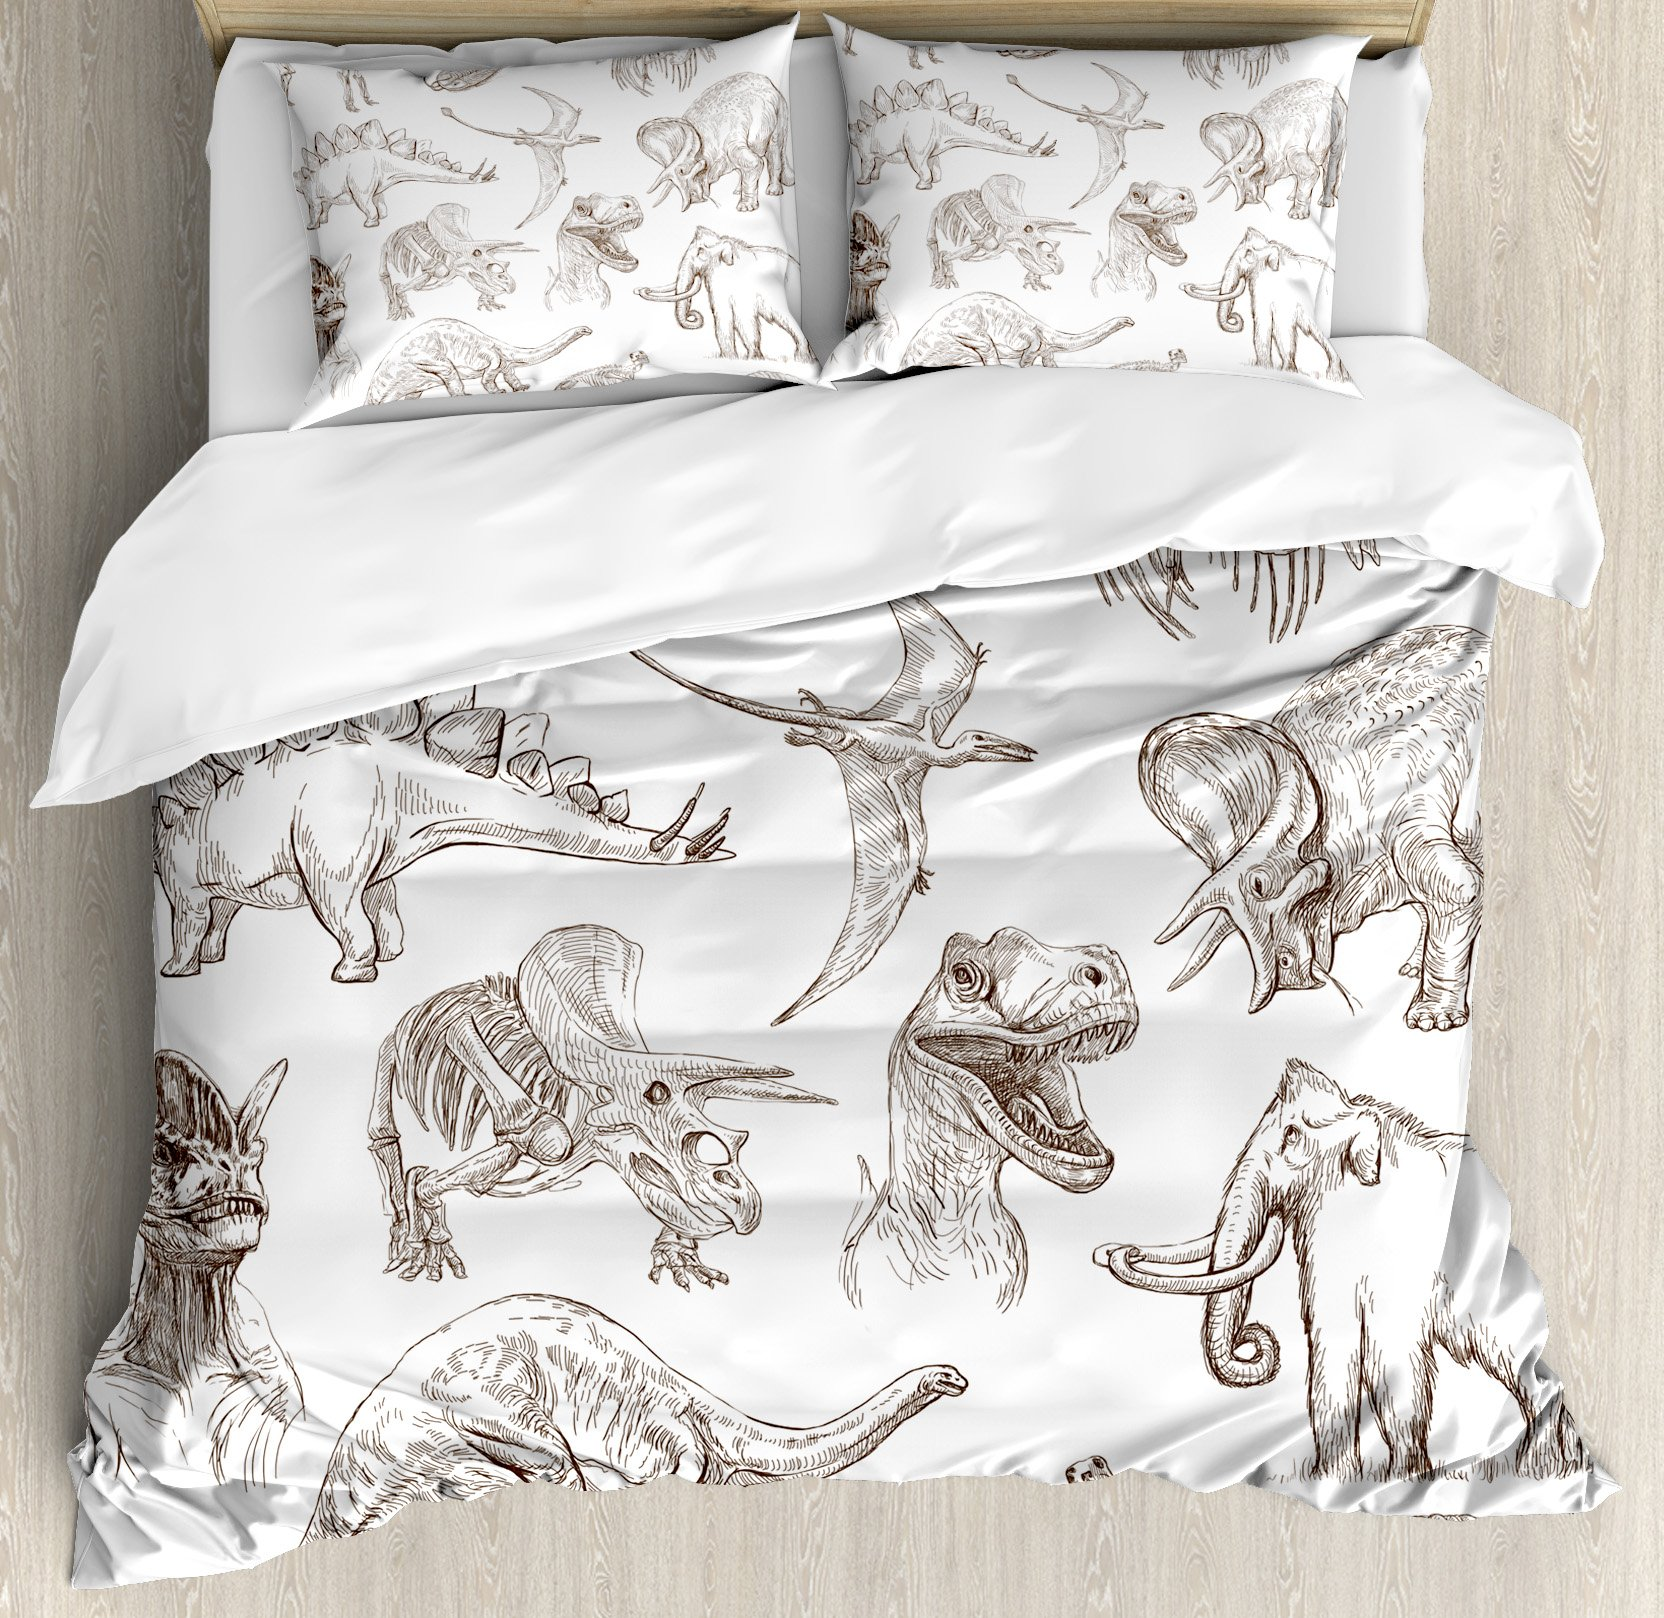 Jurassic Queen Size Duvet Cover Set by Ambesonne, Collection of Various Dinosaurs Illustrations Gigantic Skeleton Biology Historic, Decorative 3 Piece Bedding Set with 2 Pillow Shams, Gold White by Ambesonne